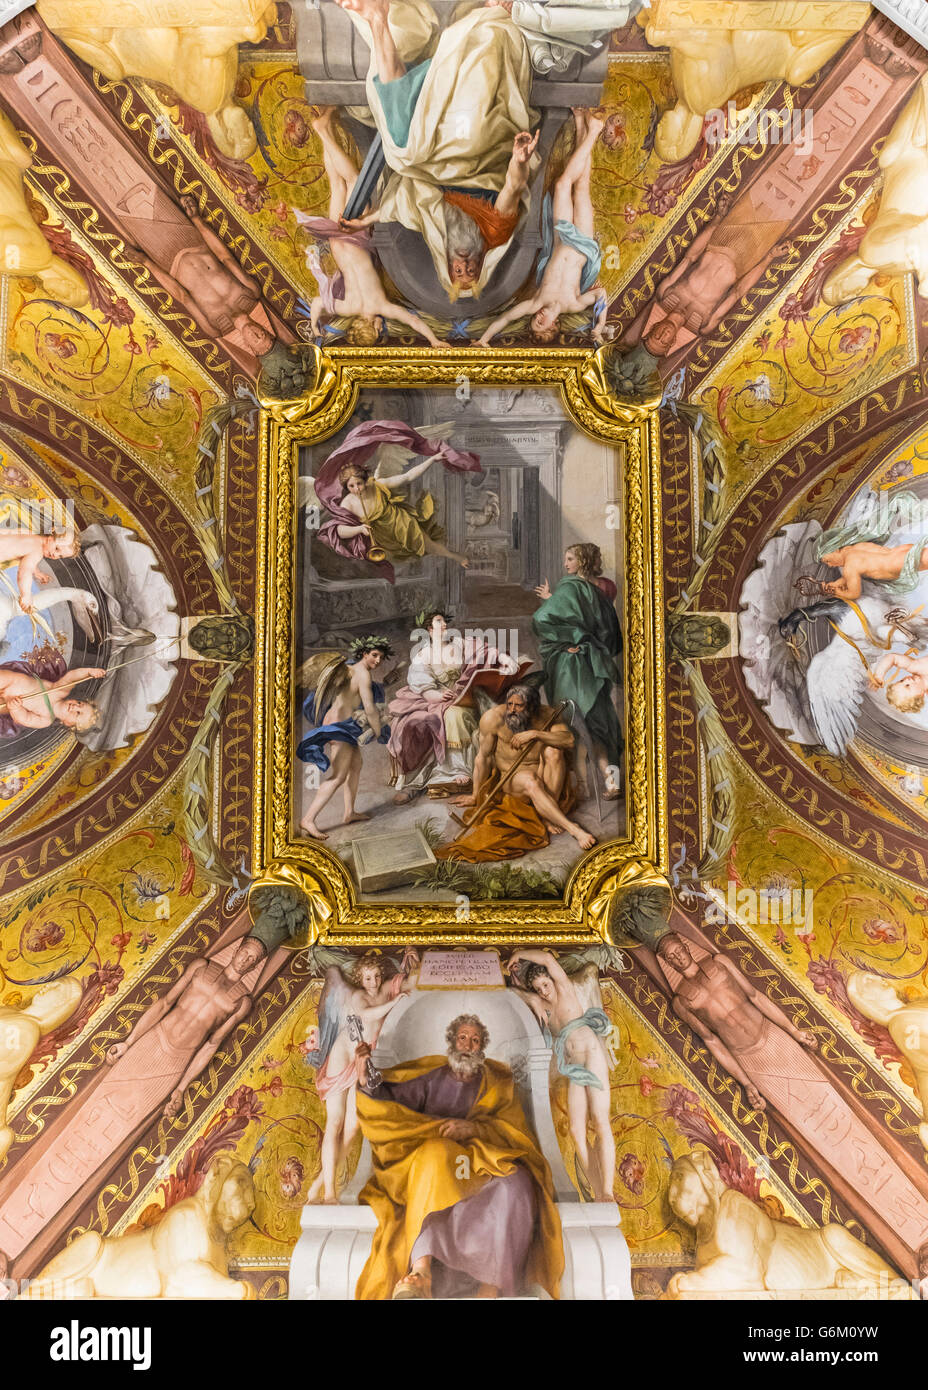 Ornate roof in the Vatican Museum in Rome, Italy - Stock Image